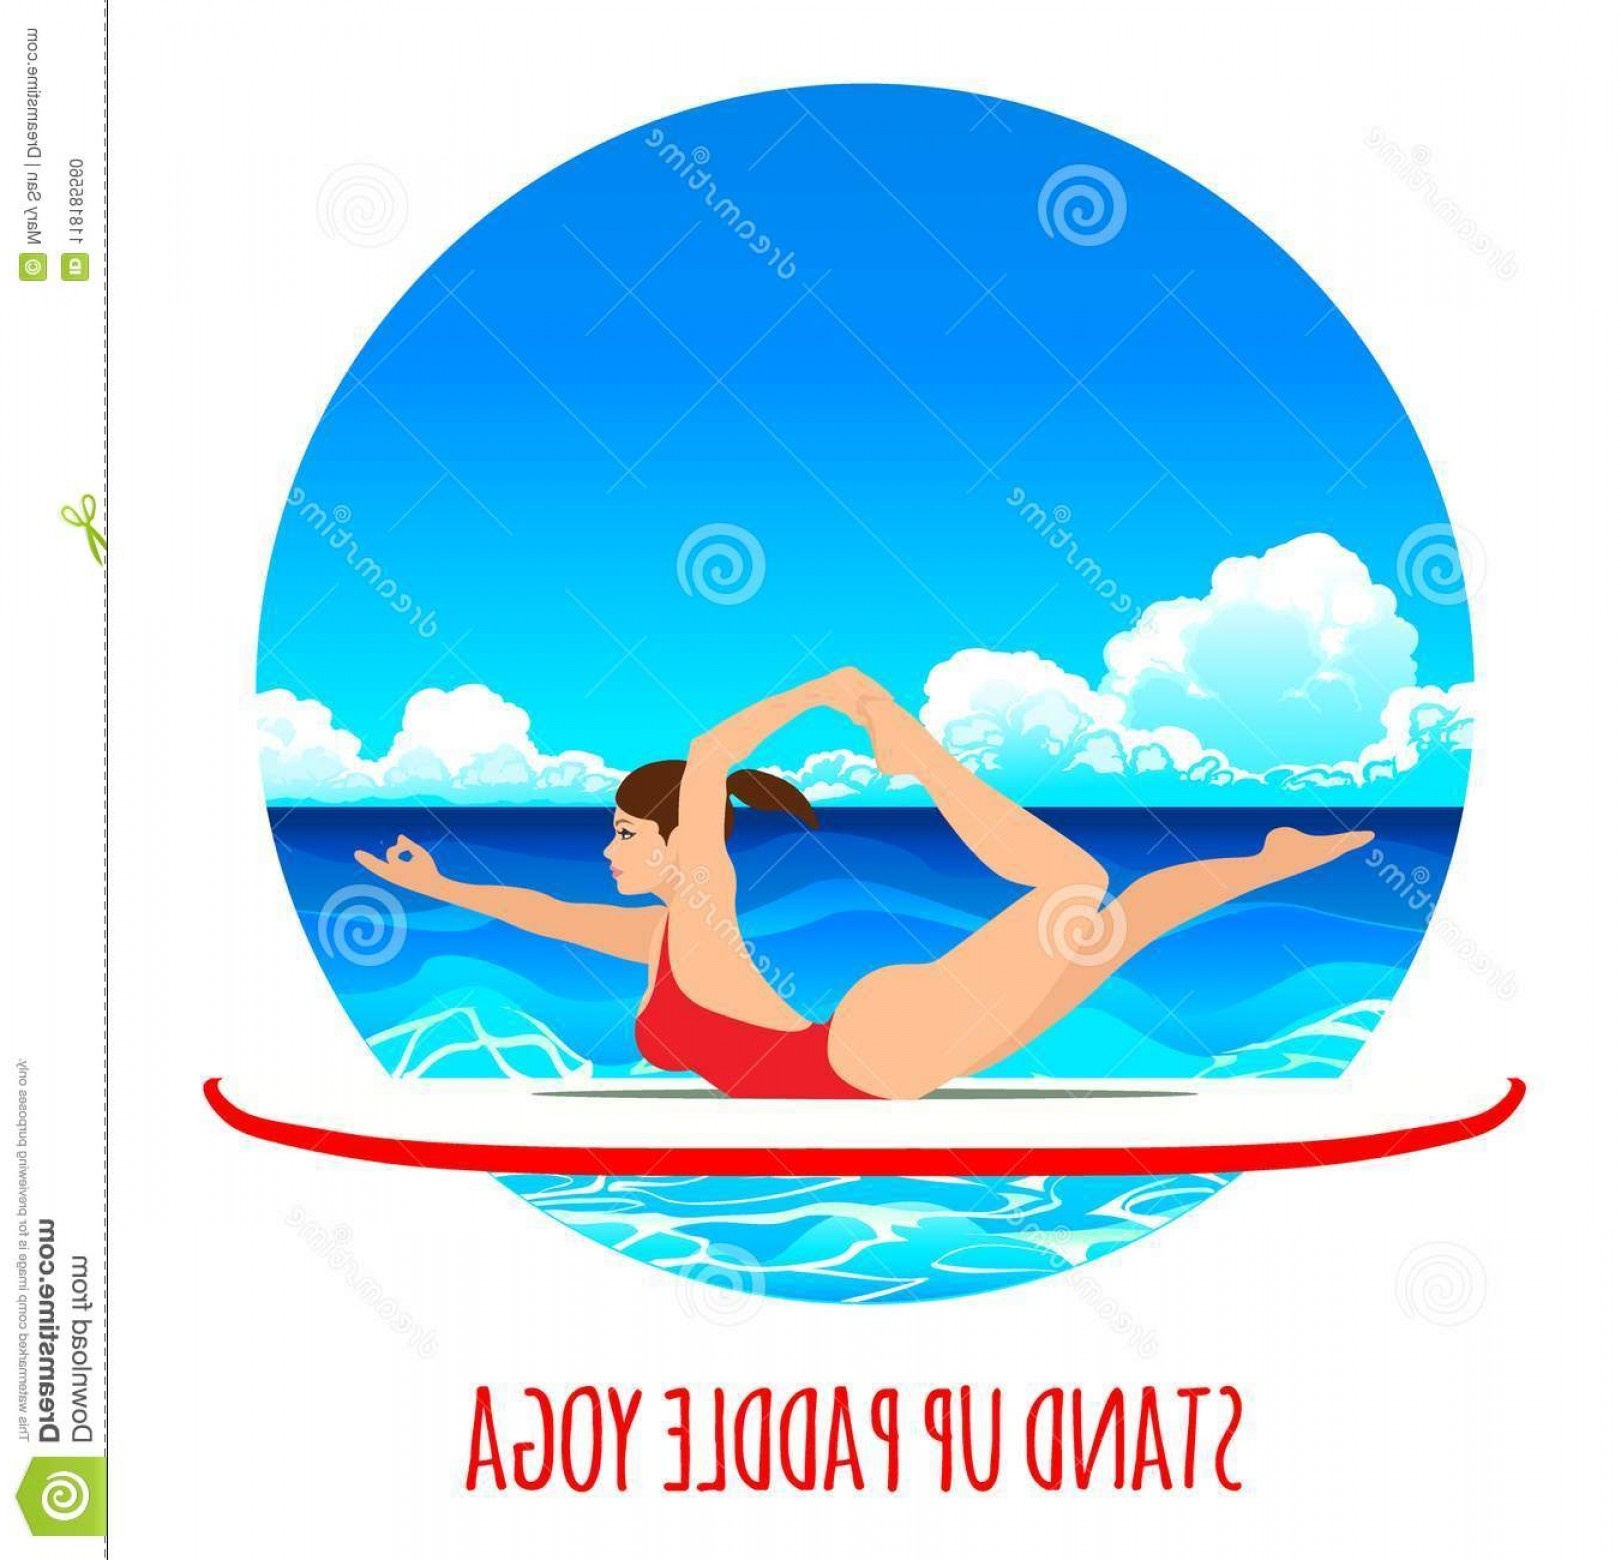 Paddleboard Vector Icons: Woman Practicing Sup Yoga Paddle Board Sea Ocean Vector Illustration Background Image